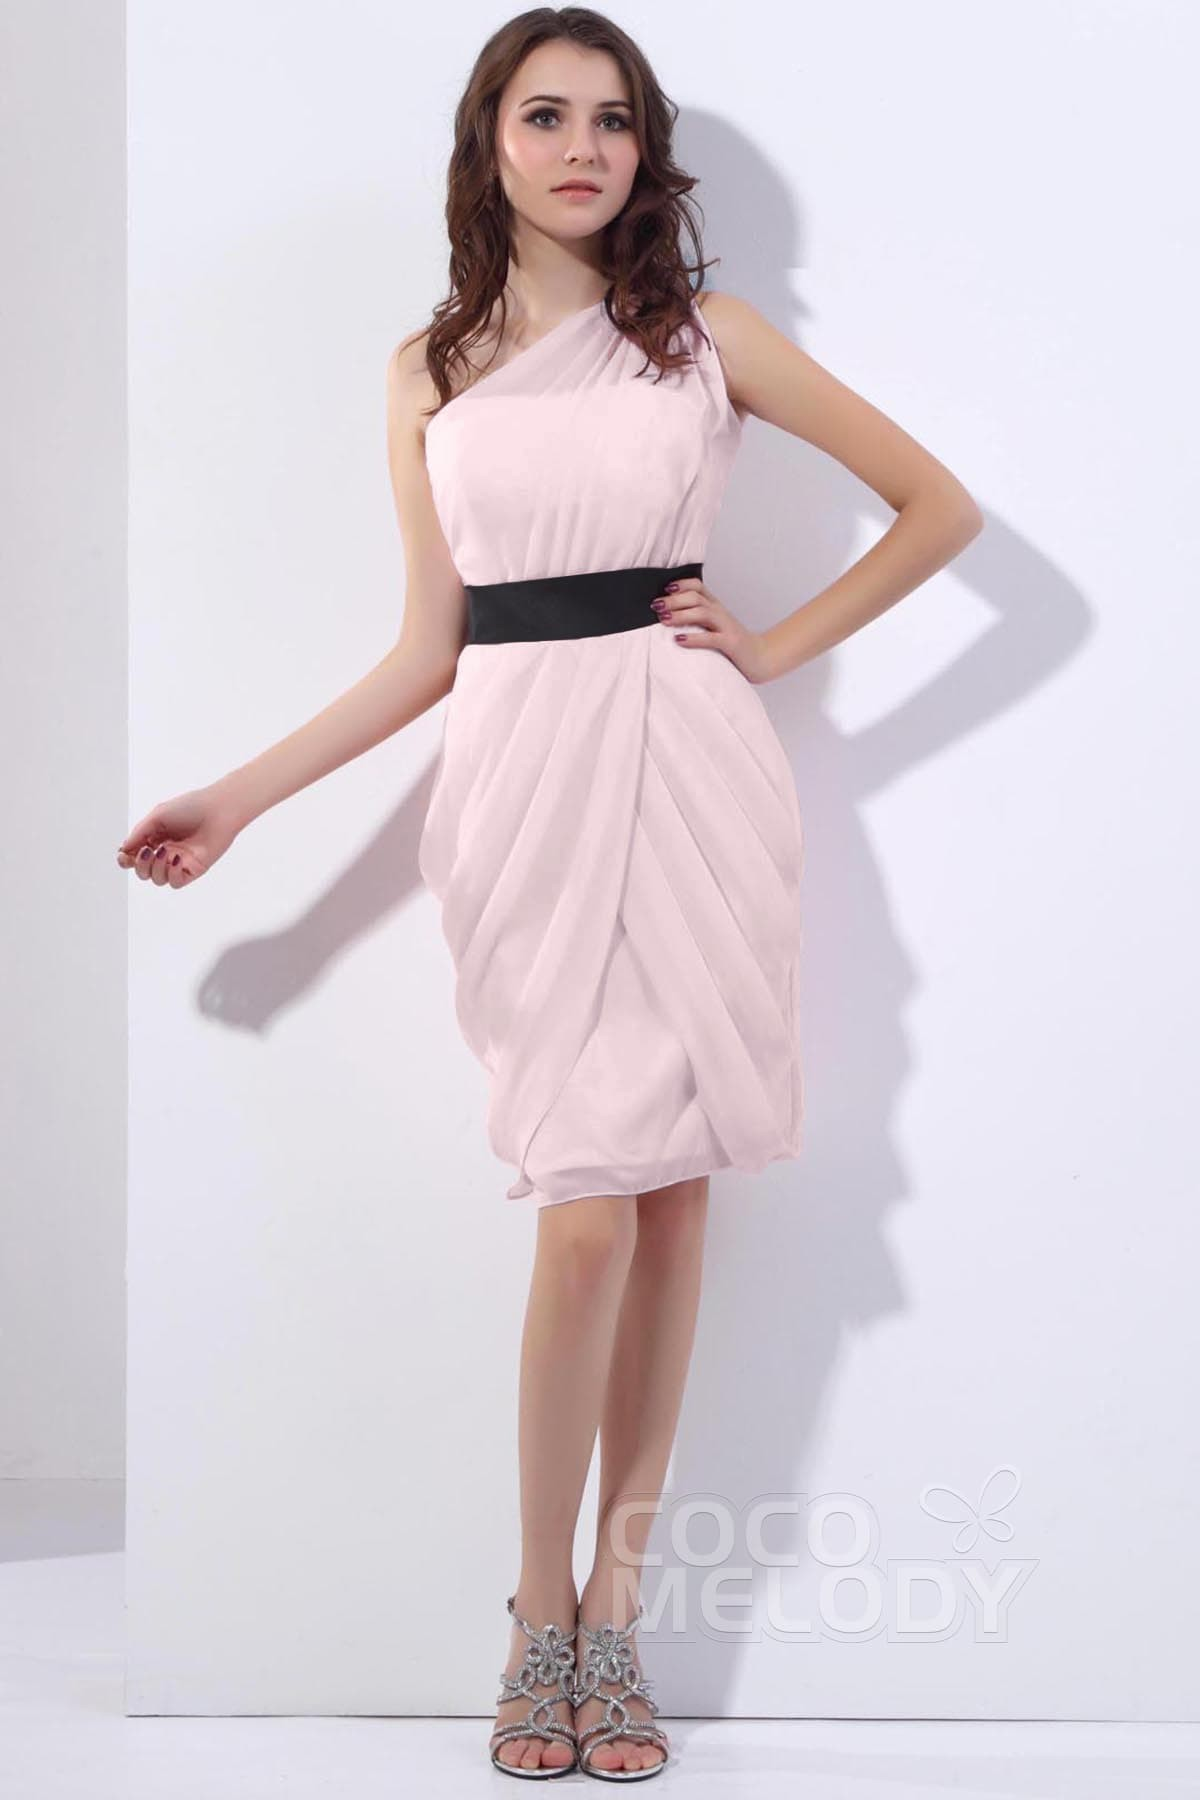 Divine sheath column one shoulder knee length chiffon bridesmaid divine sheath column one shoulder knee length chiffon primrose pink bridesmaid dress cozk13008 ombrellifo Gallery